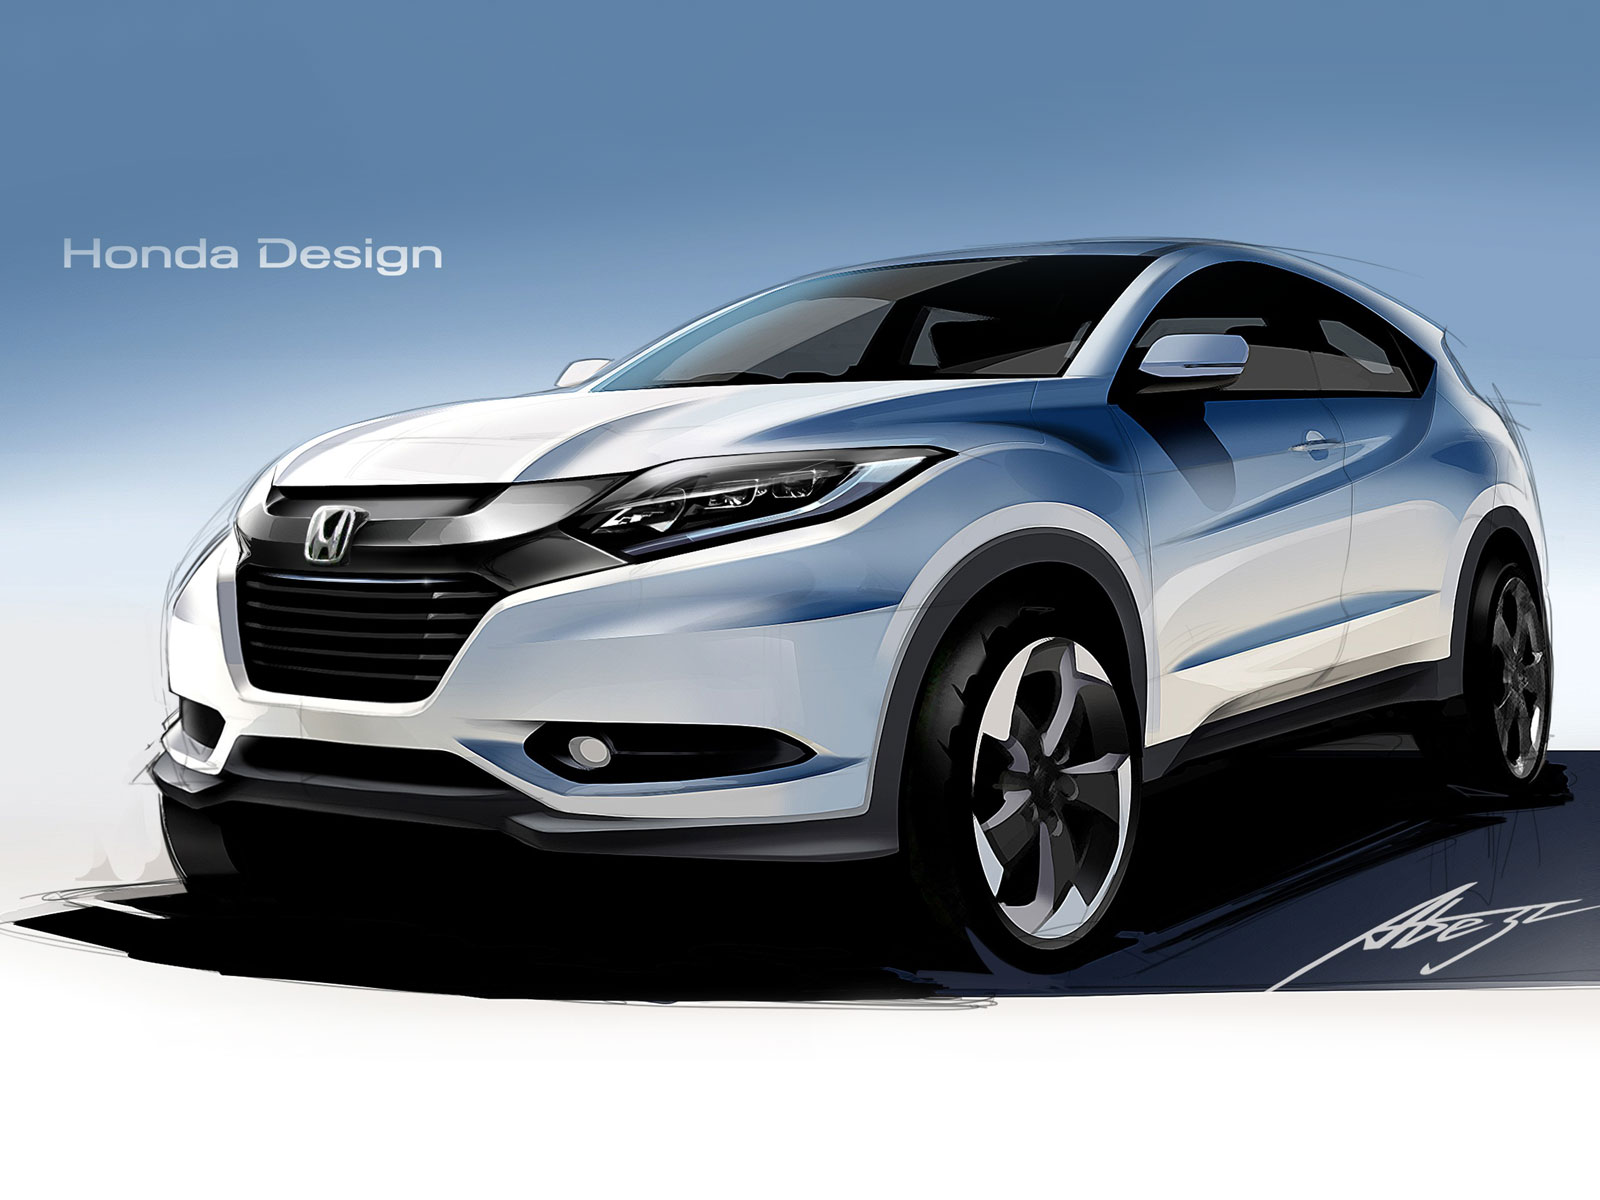 Honda HR-V - Design Sketch Render - Car Body Design